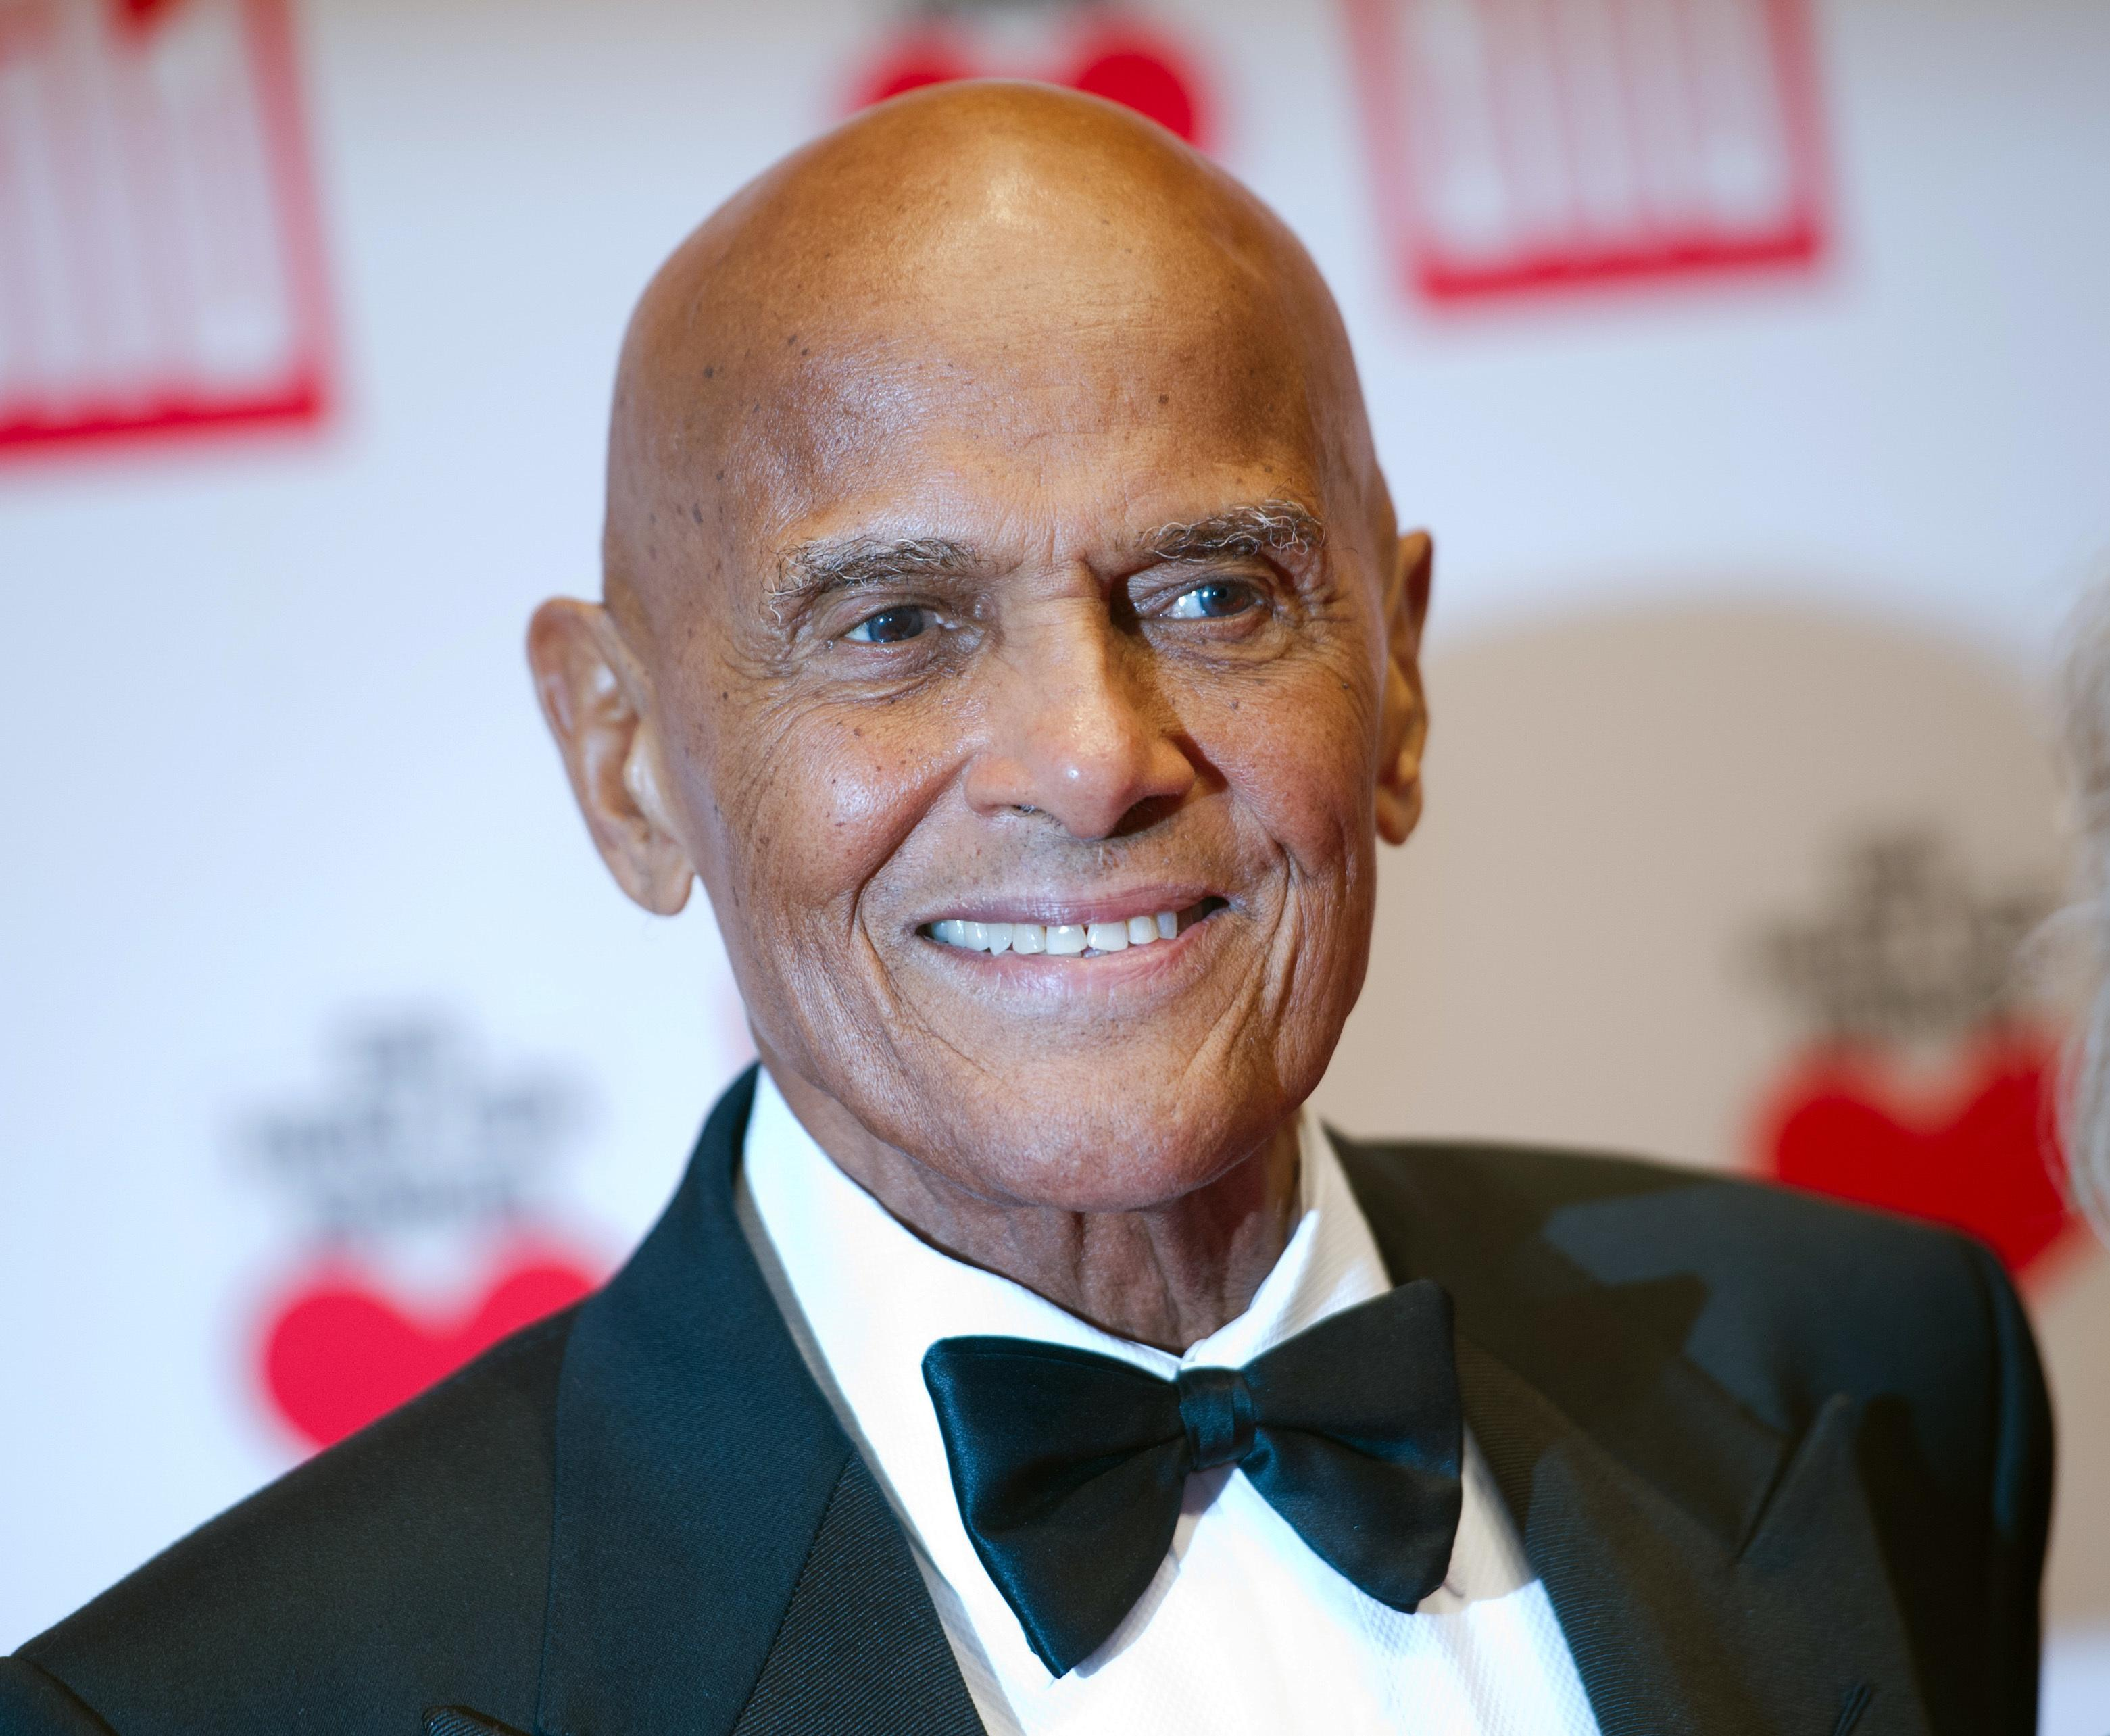 Music Harry Belafonte.JPG The Most Cringe-Worthy Celebrity Interviews Of All Time